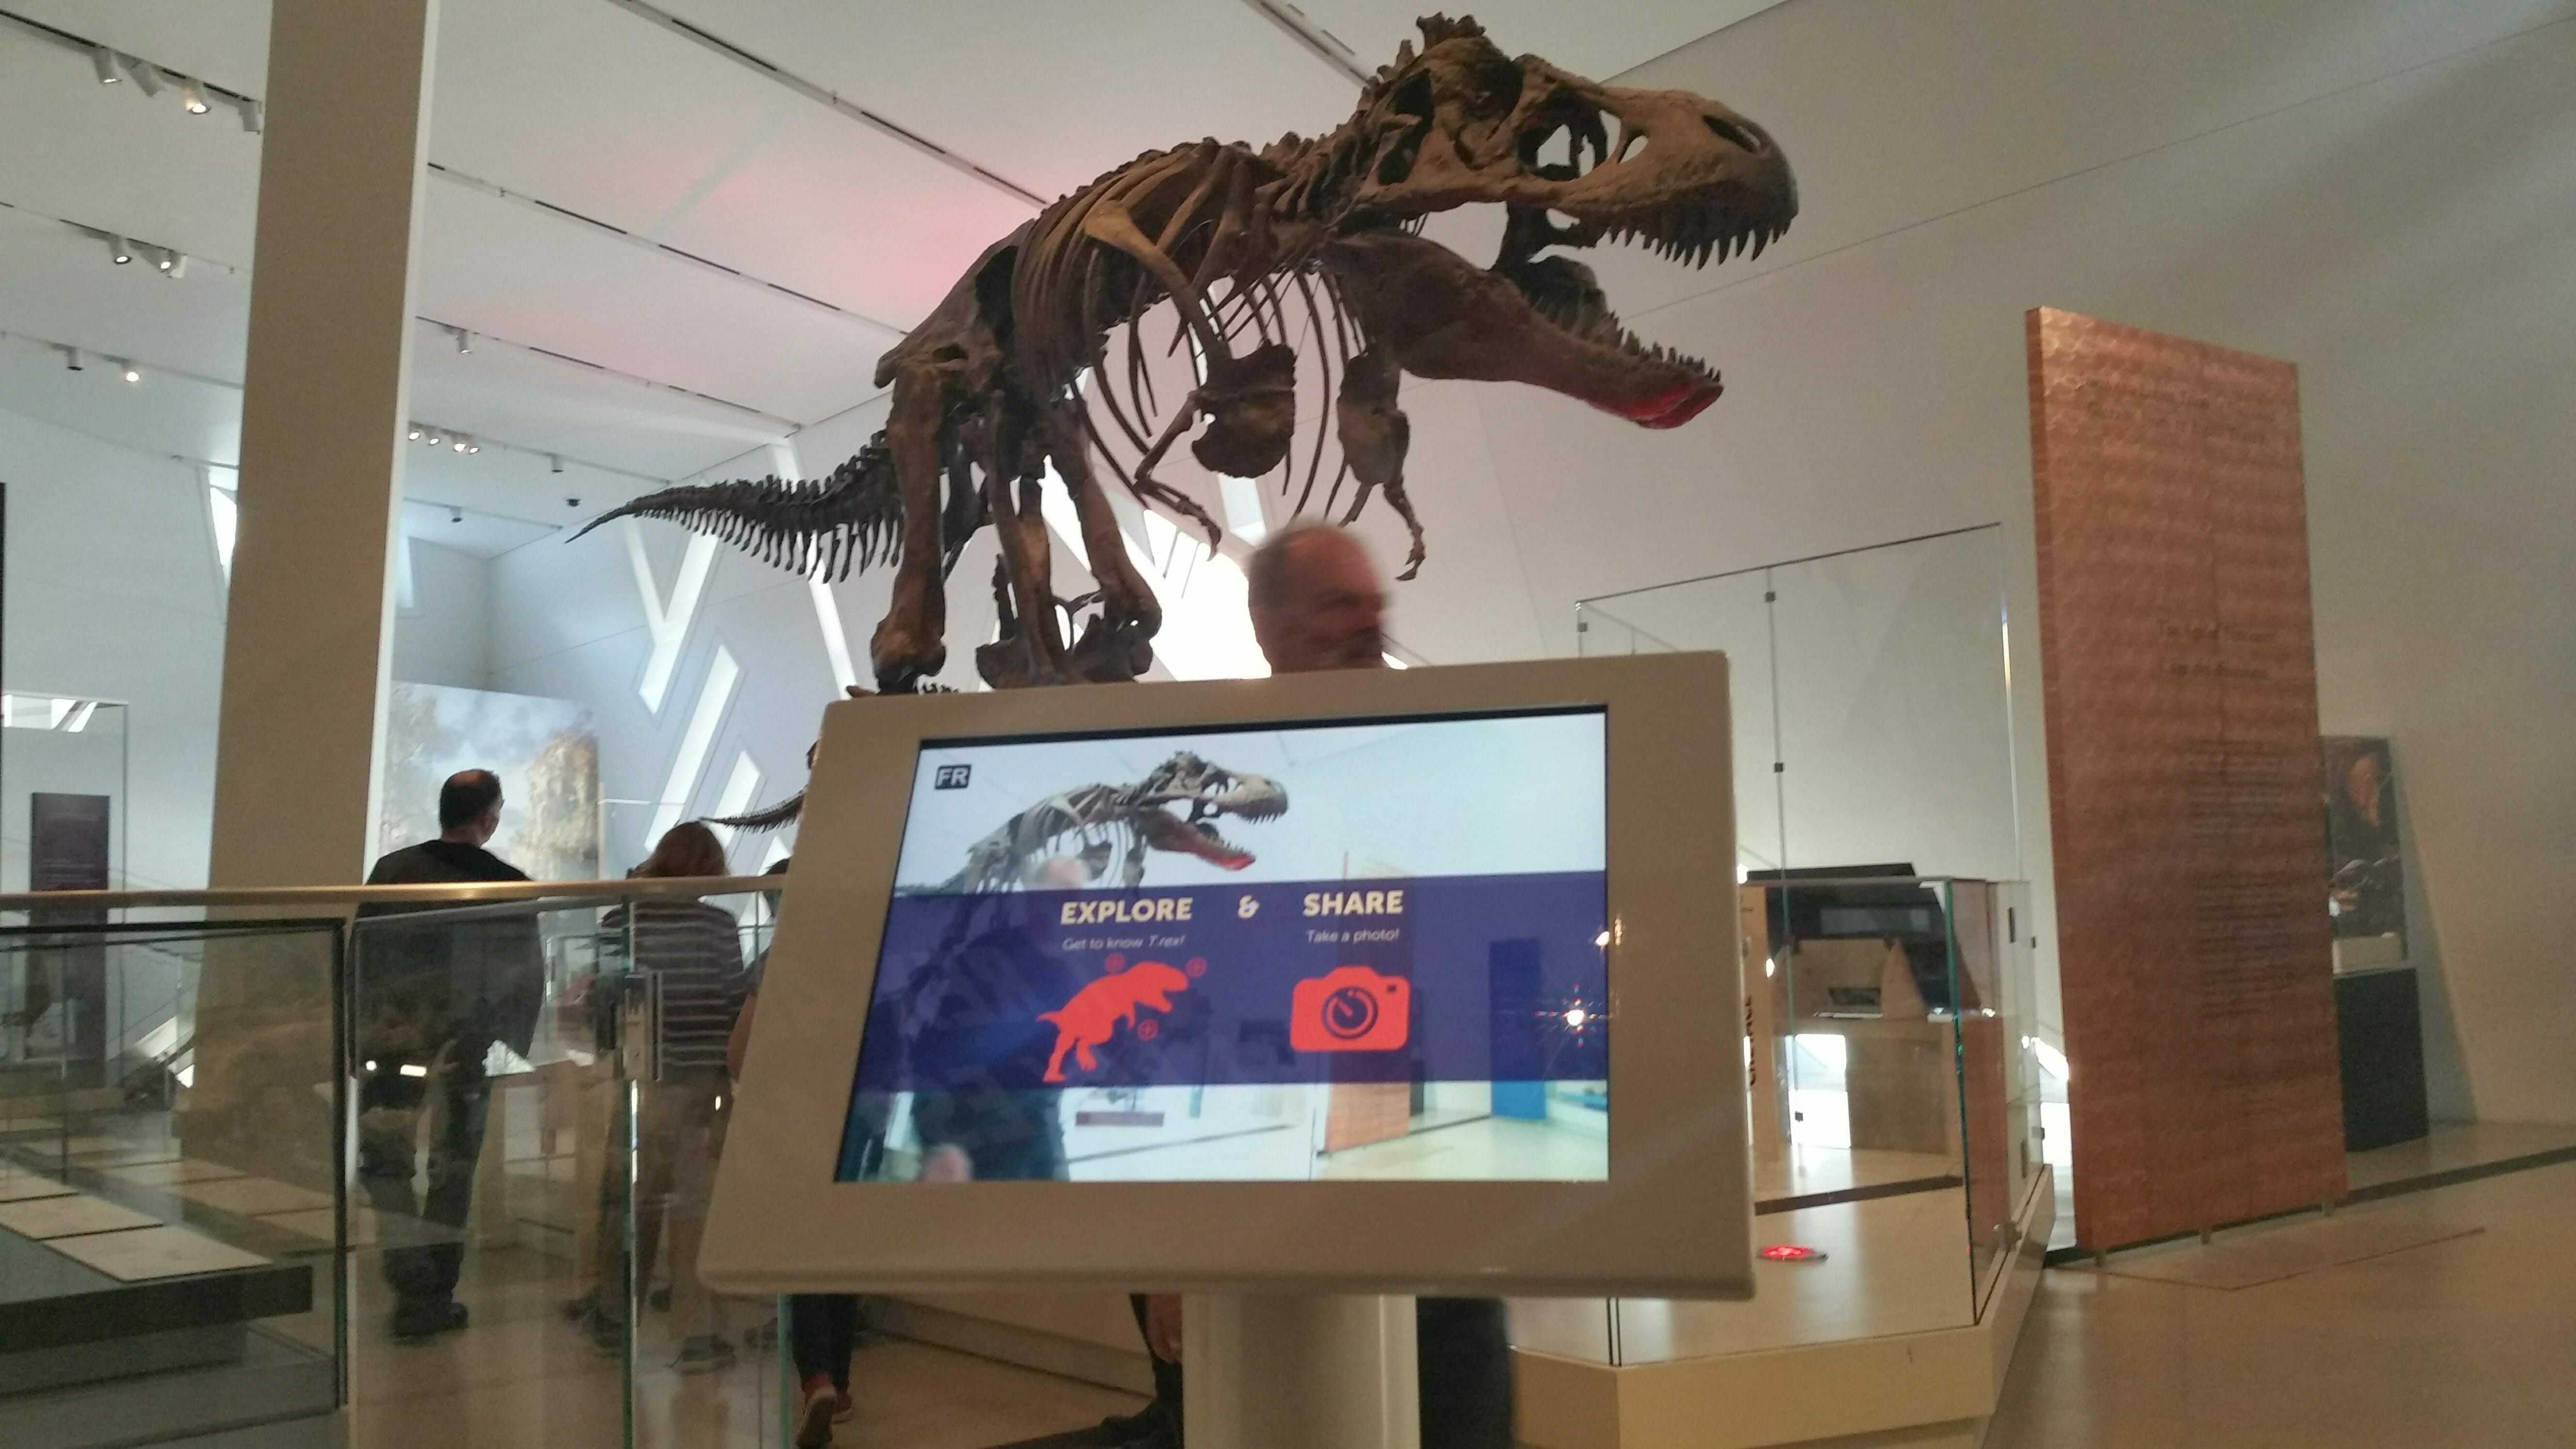 Trex aumented reality at ROM